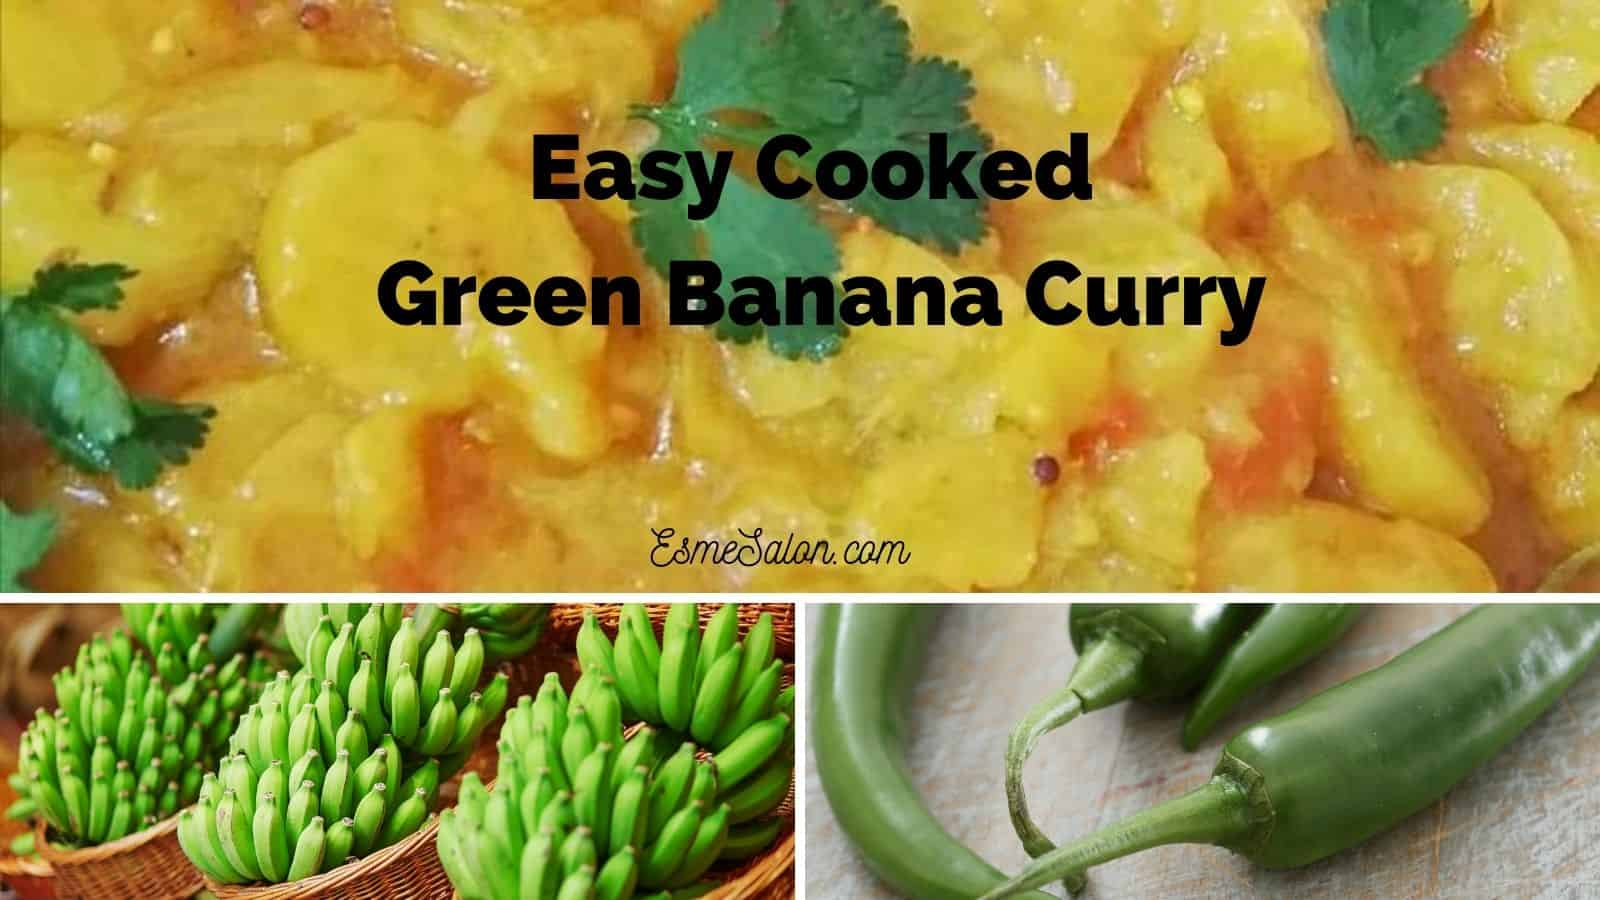 A recipes with unripe bananas for making a Curry salad or side dish